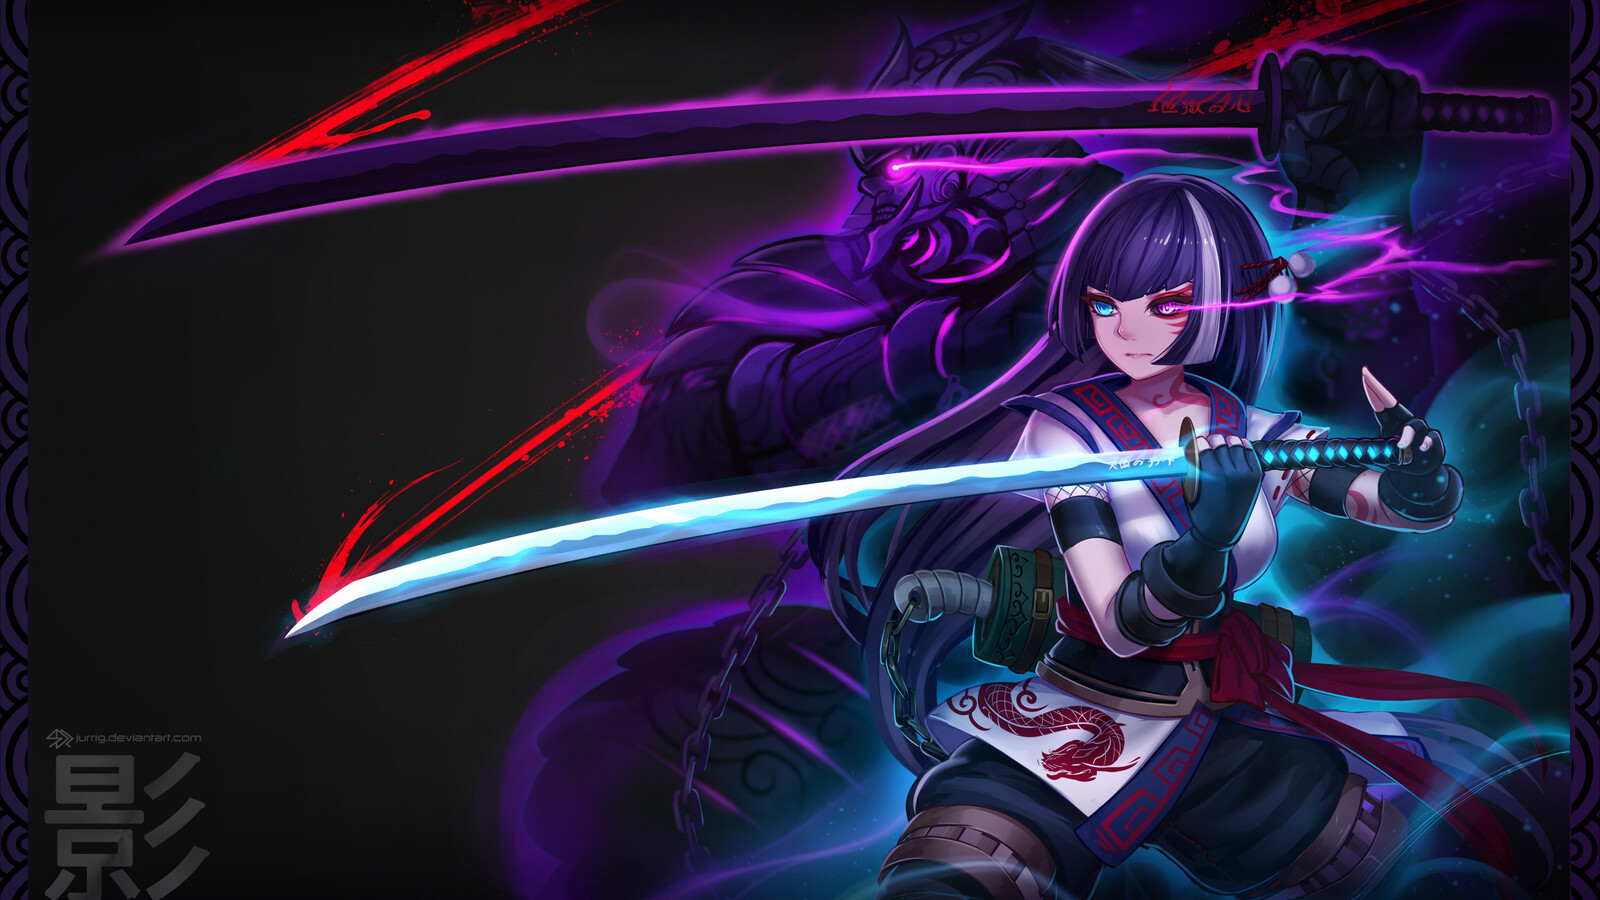 1600x900 Anime Warrior Girl 1600x900 Resolution HD 4k Wallpapers